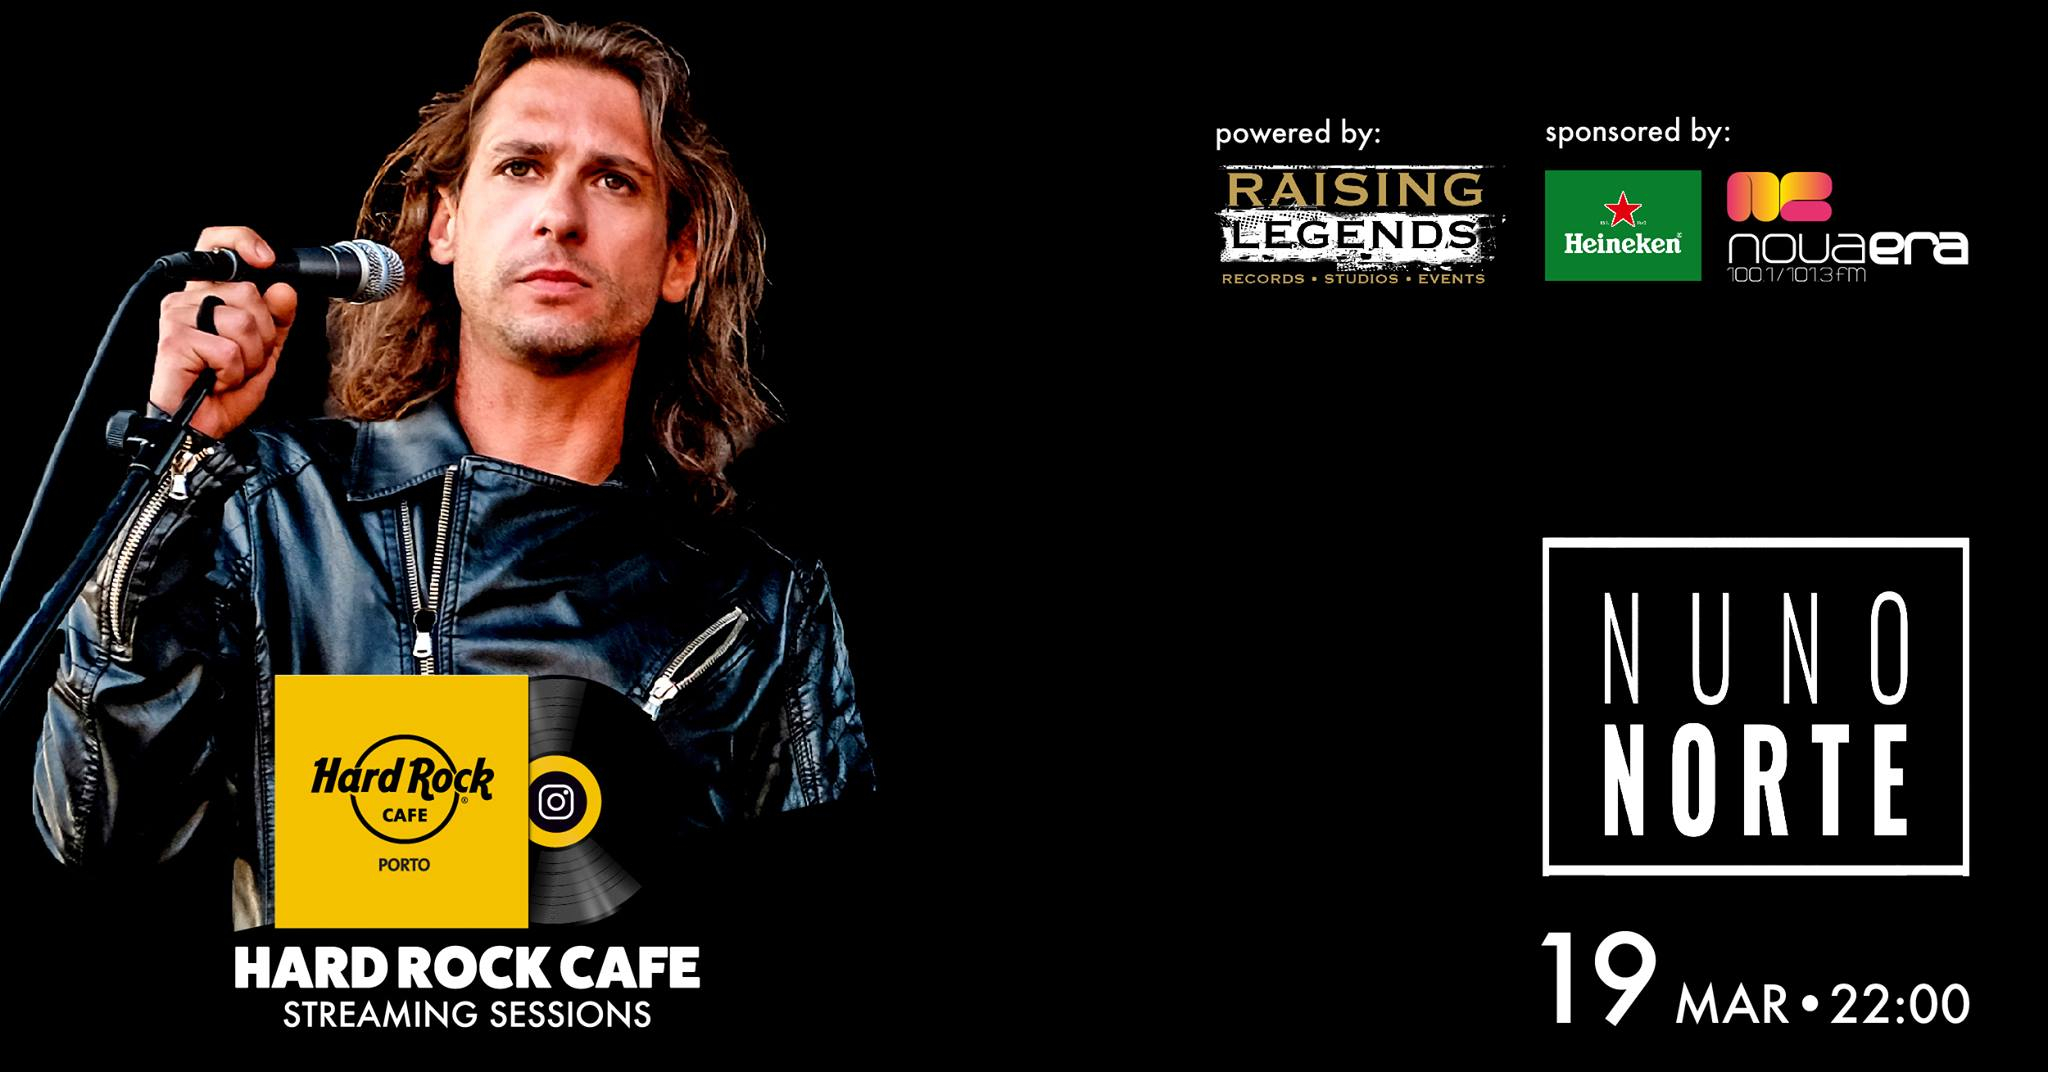 Nuno Norte | Hard Rock Cafe Streaming Sessions